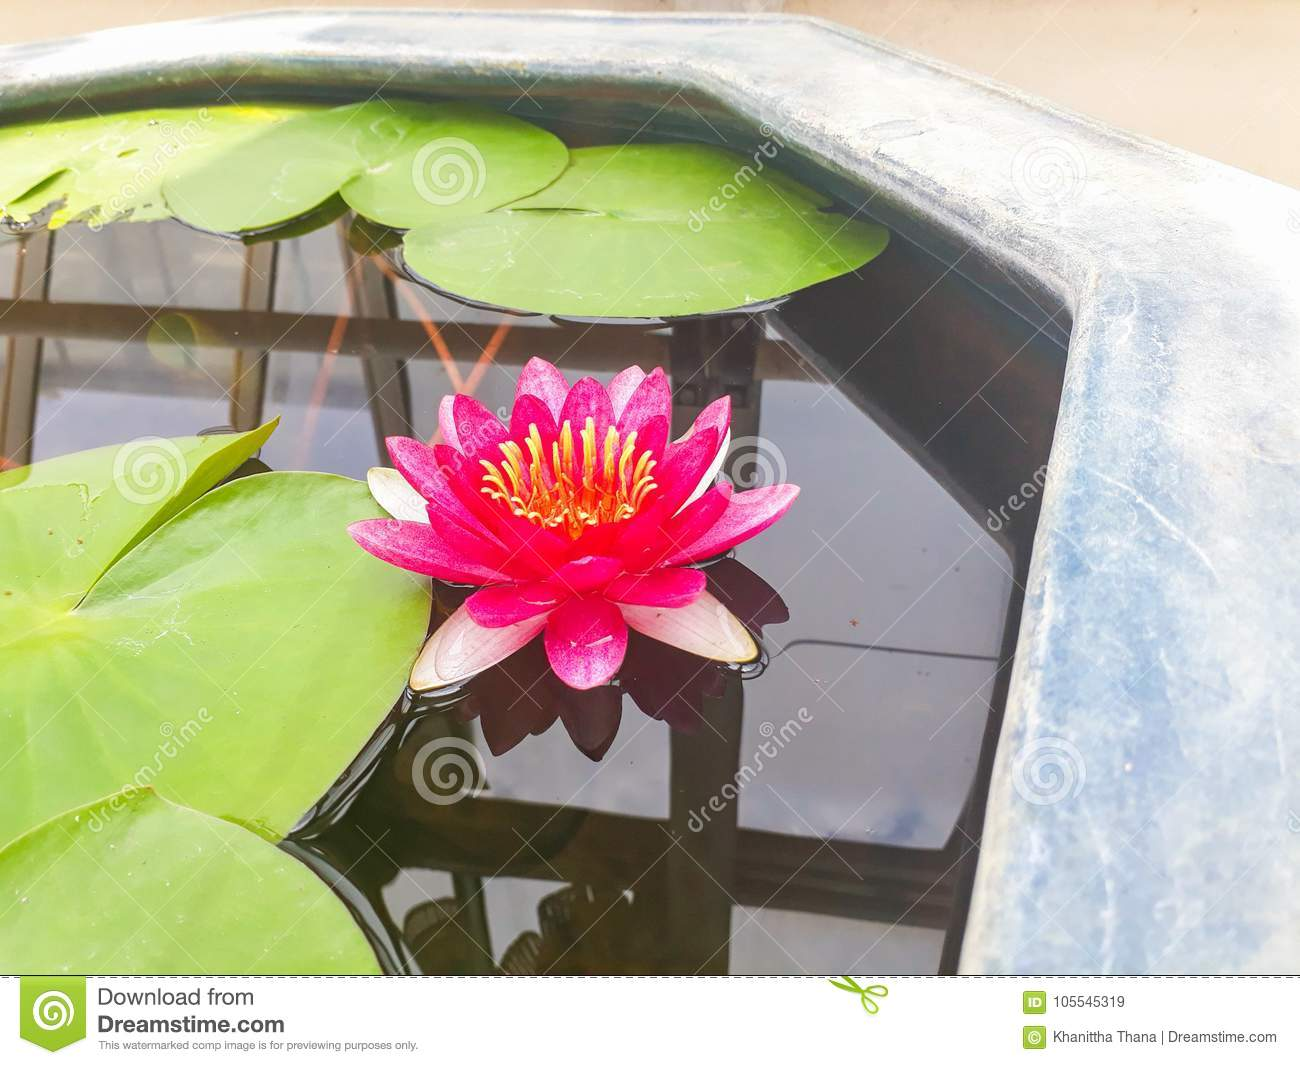 Good Night Flower Stock Image Image Of Thailand Good 105545319